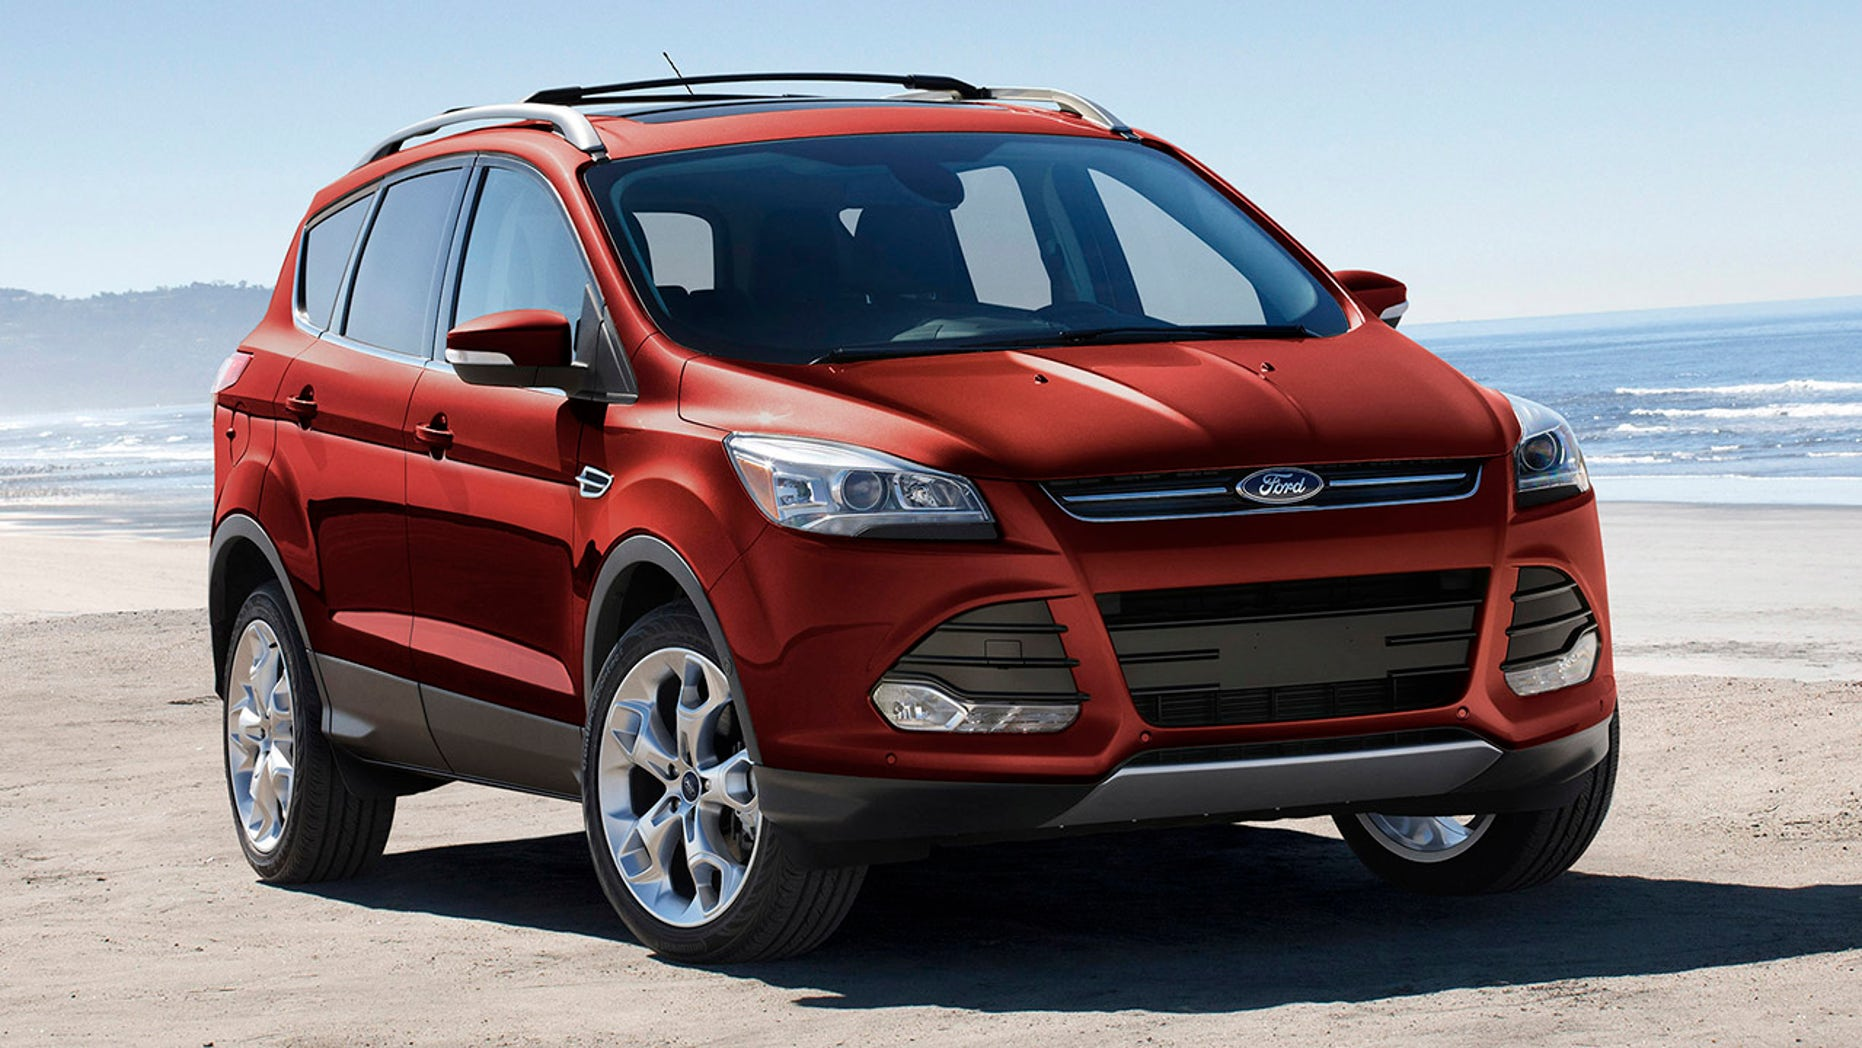 This undated photo provided by Ford shows a 2015 Ford Escape, one of the used Ford and Lincoln vehicles available through Canvas, a car subscription service created by Ford and now operating in Los Angeles and San Francisco. Car subscription services promise a hassle-free way to get a car, sometimes including unlimited opportunities to switch vehicles. (Ford Motor Co. via AP)